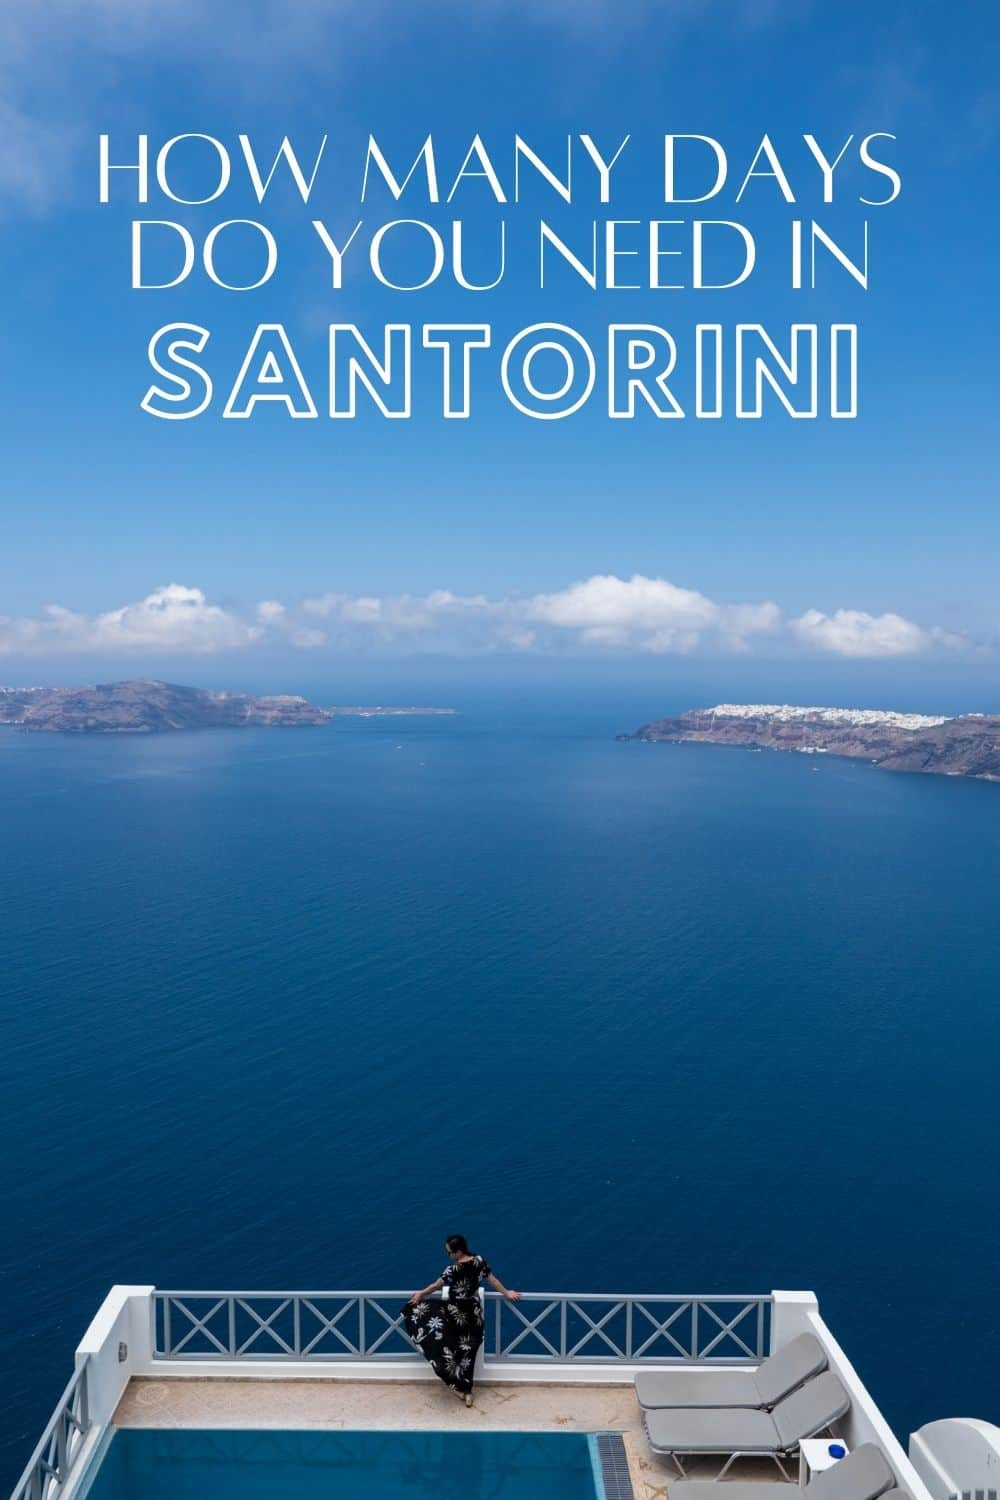 How Many Days in Santorini Do You Need?